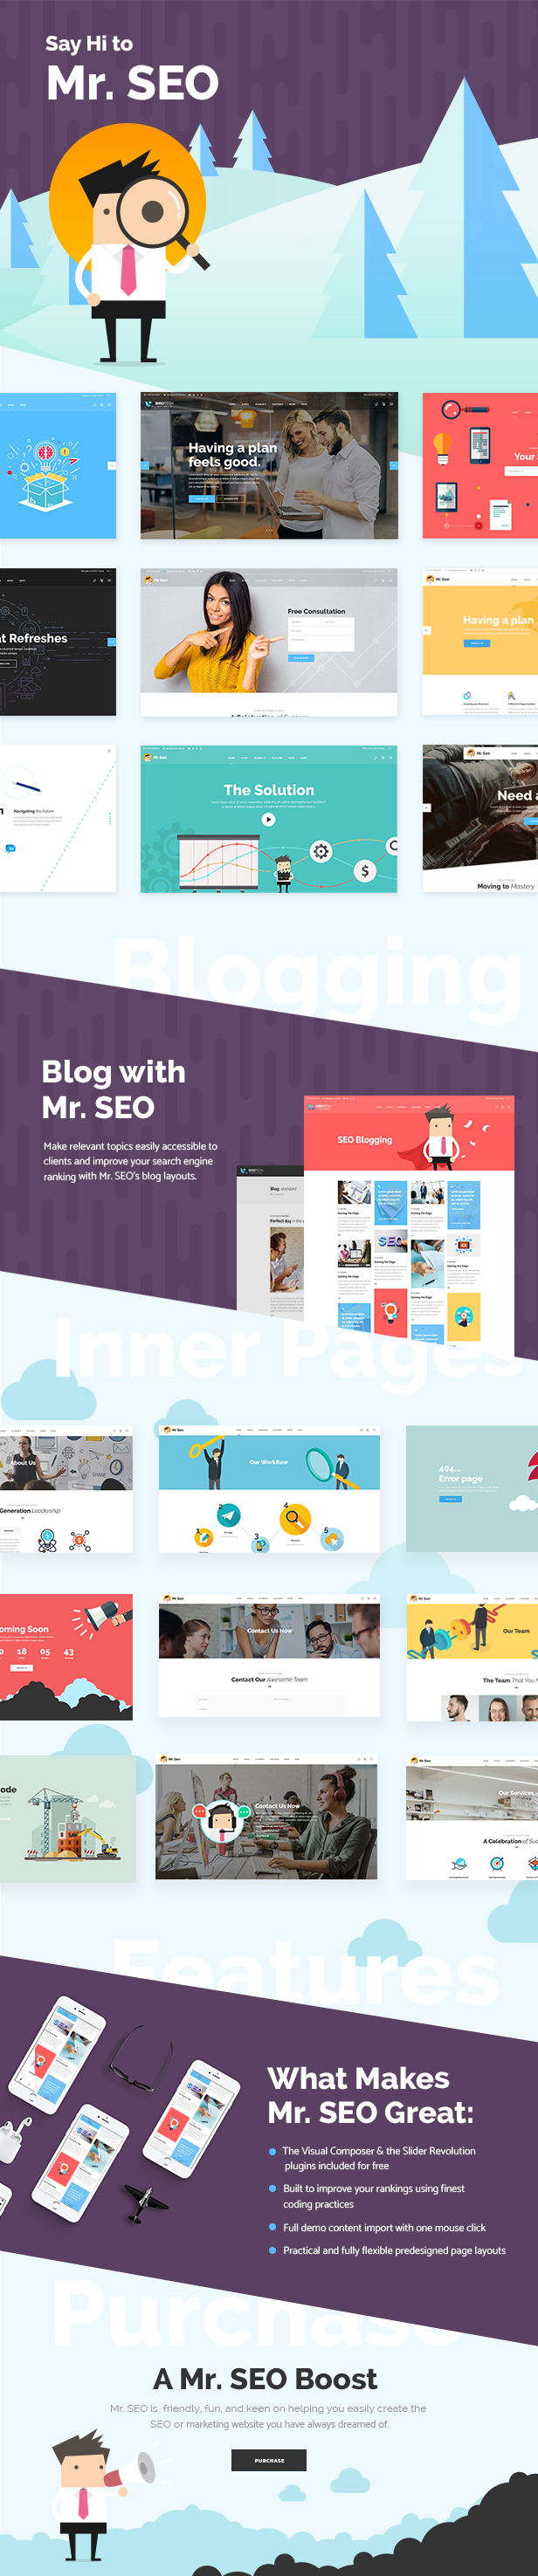 mrseo-wordpress-theme-for-sell-buywordpressthemeonline